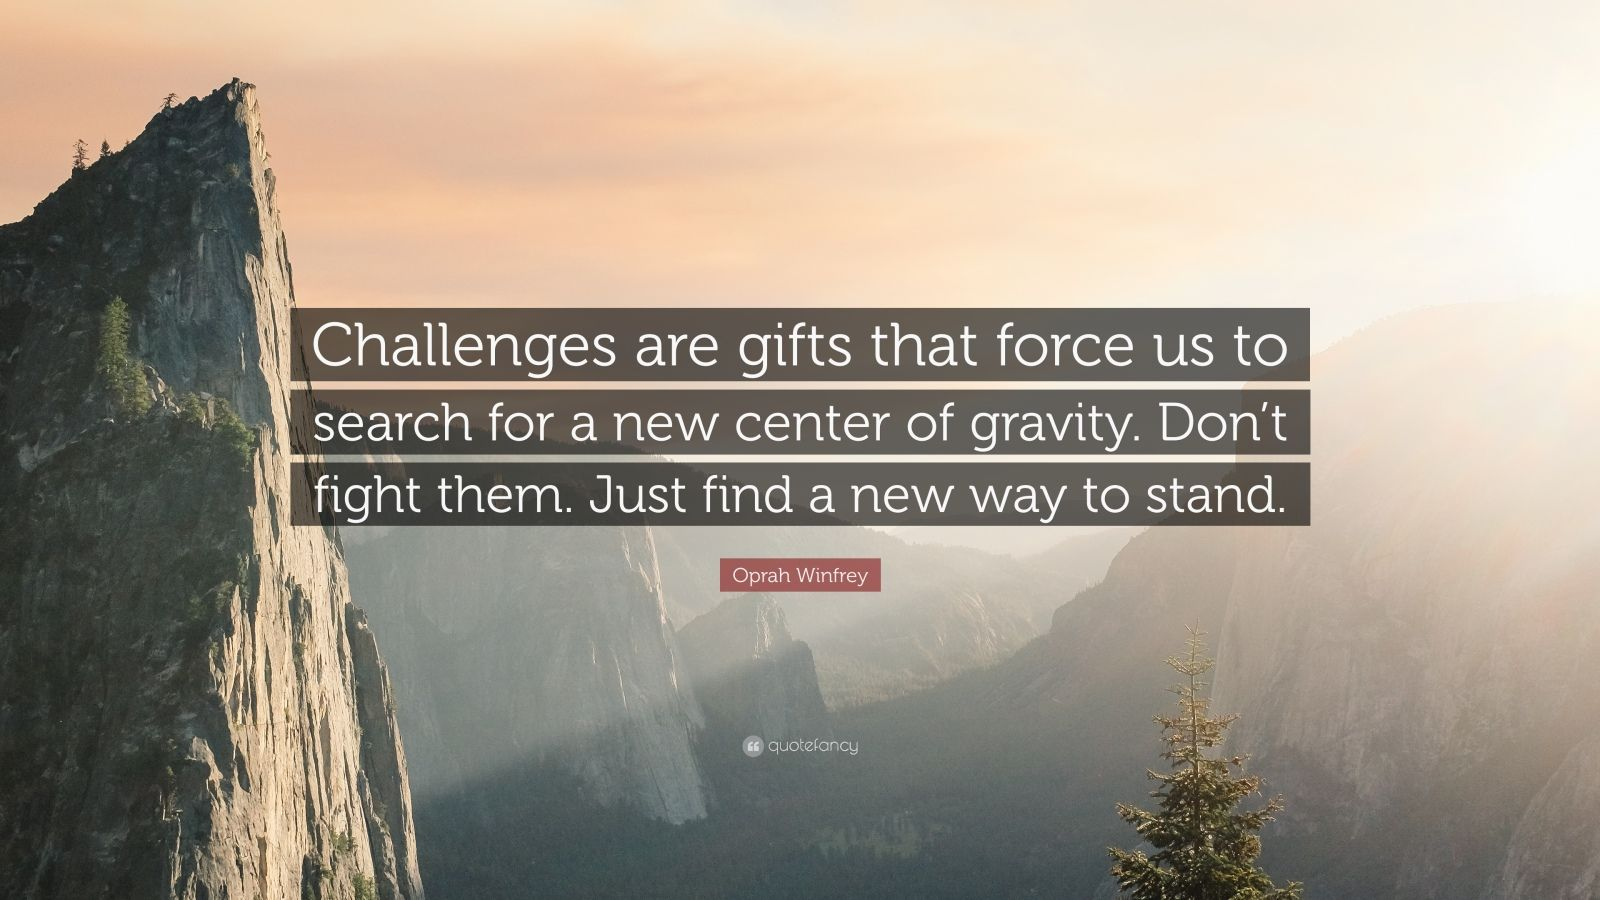 """Oprah Winfrey Quote: """"Challenges are gifts that force us to search for a new center of gravity. Don't fight them. Just find a new way to stand."""""""